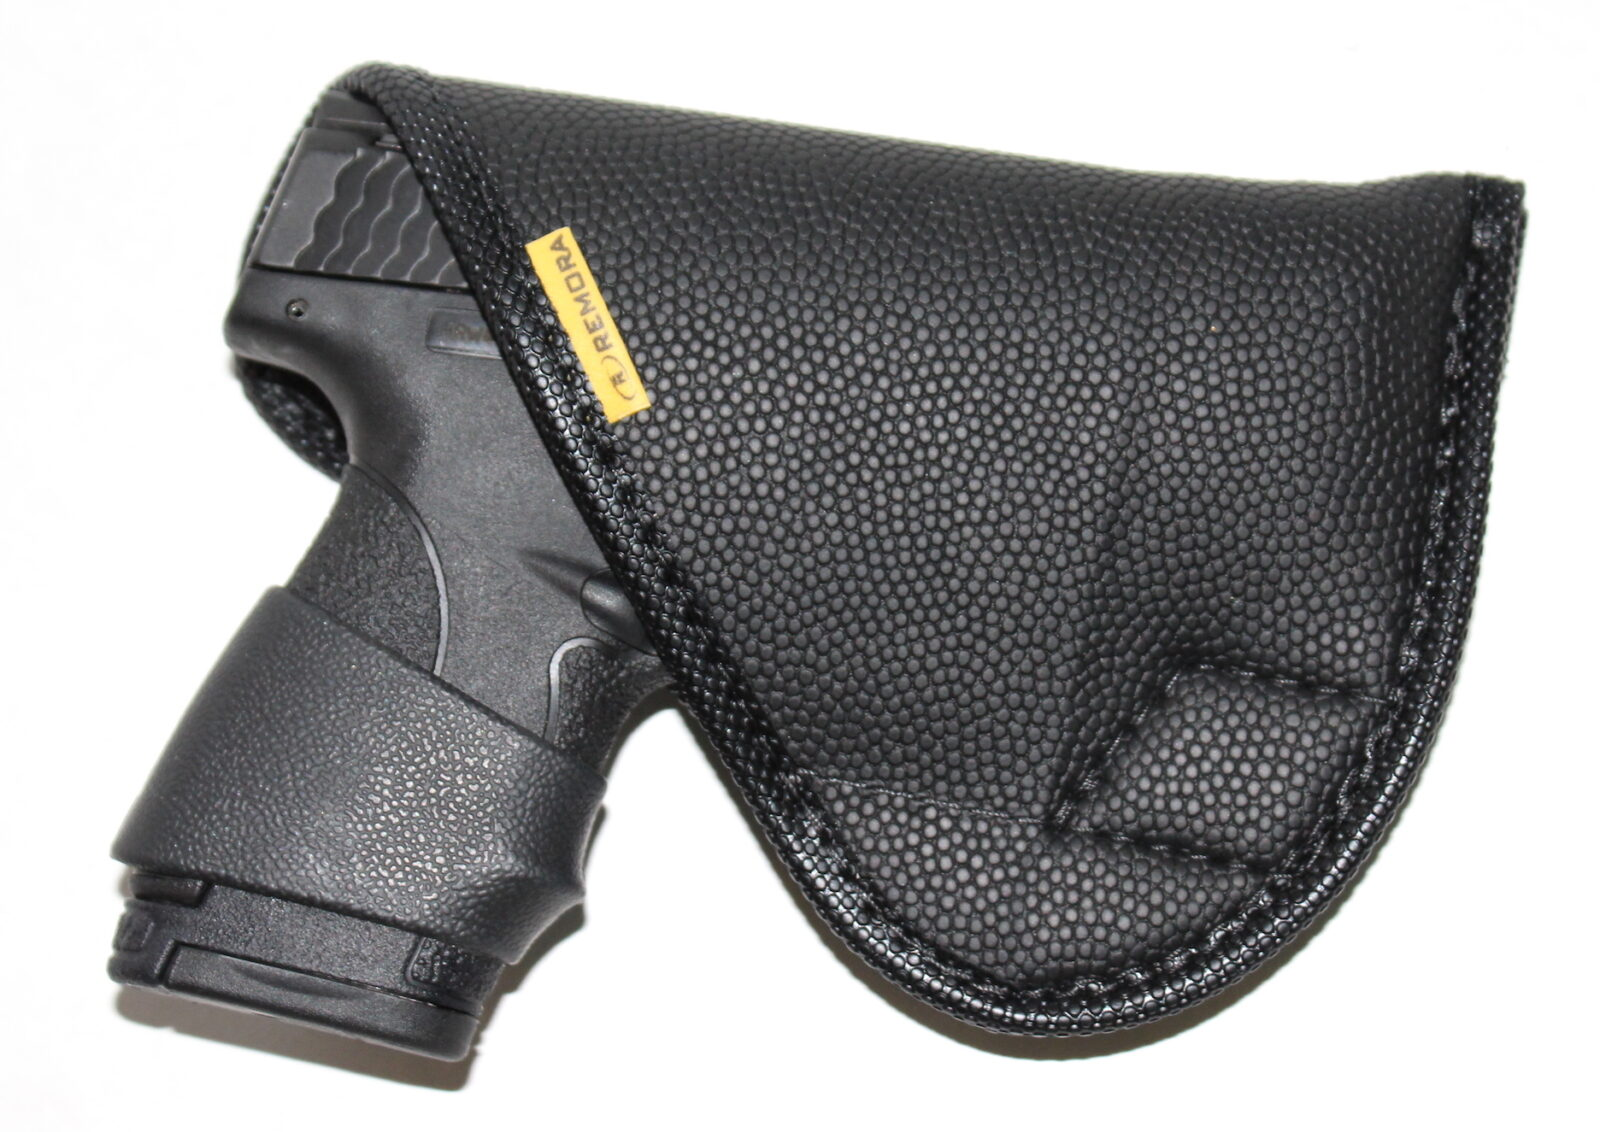 Pro Carry 7 Leather Gun Holster LH RH For Dan Wesson 1911 CCO 4.25